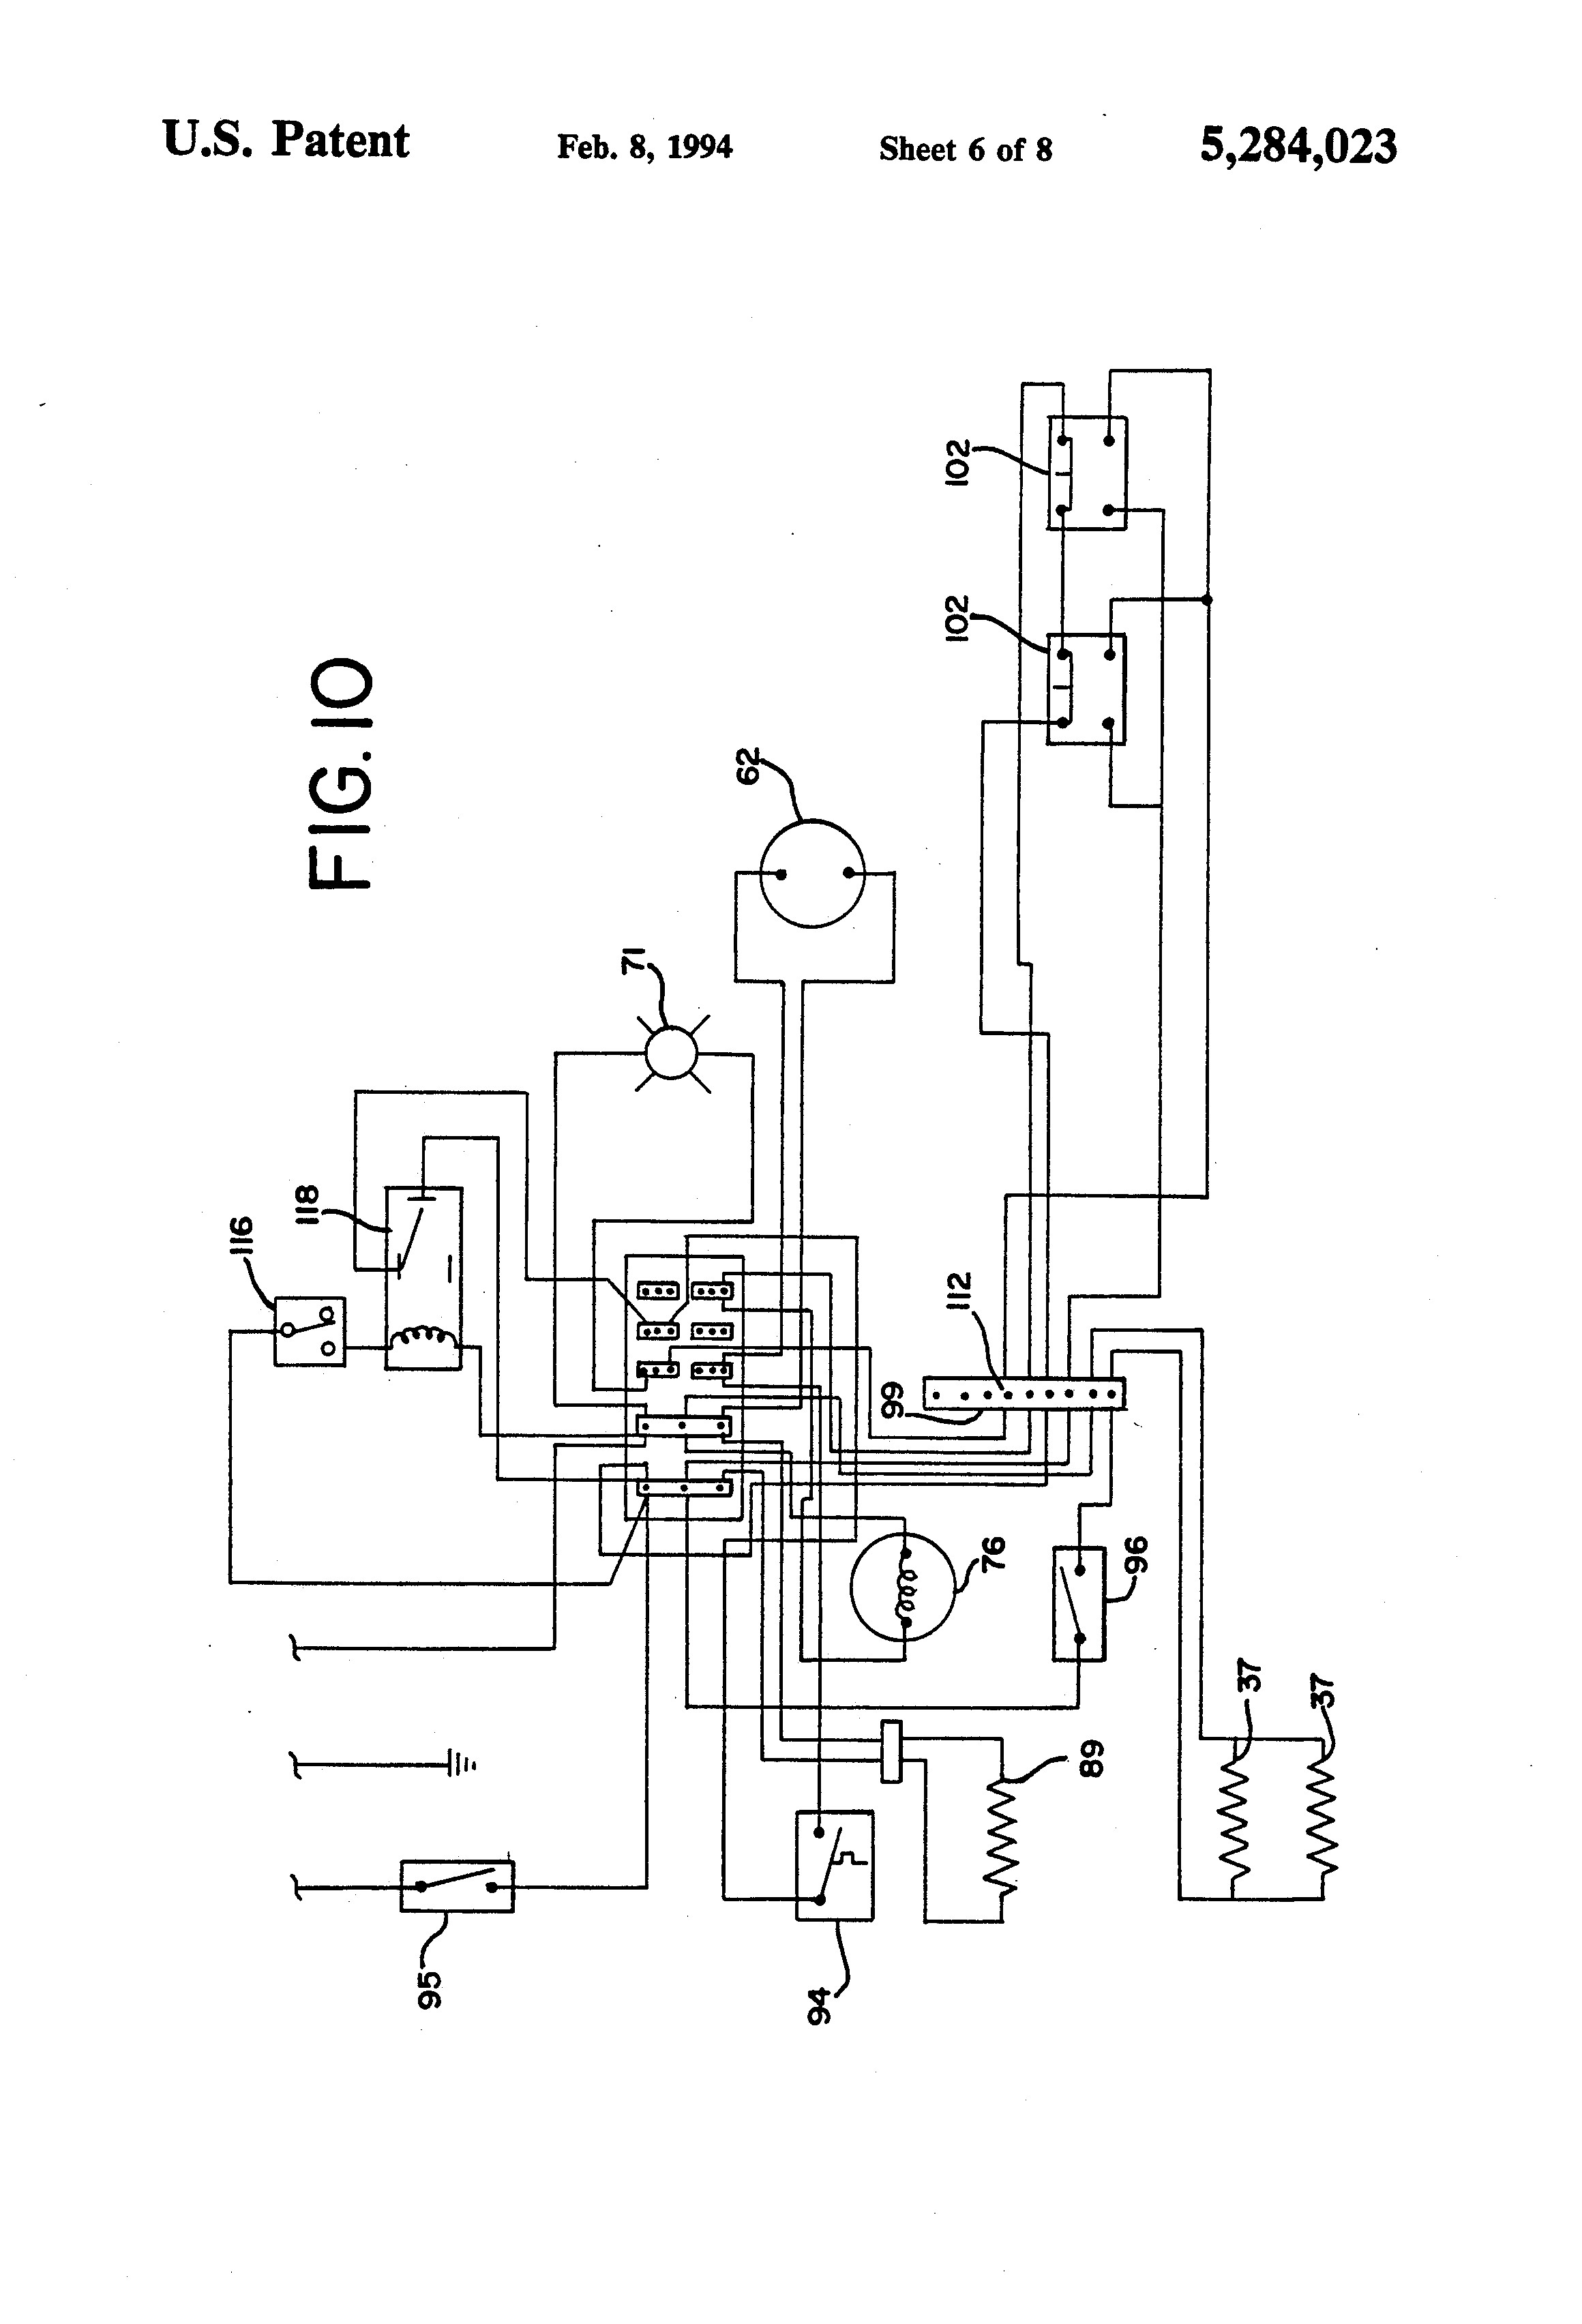 [DIAGRAM] General Electric Freezer Wiring Diagram FULL